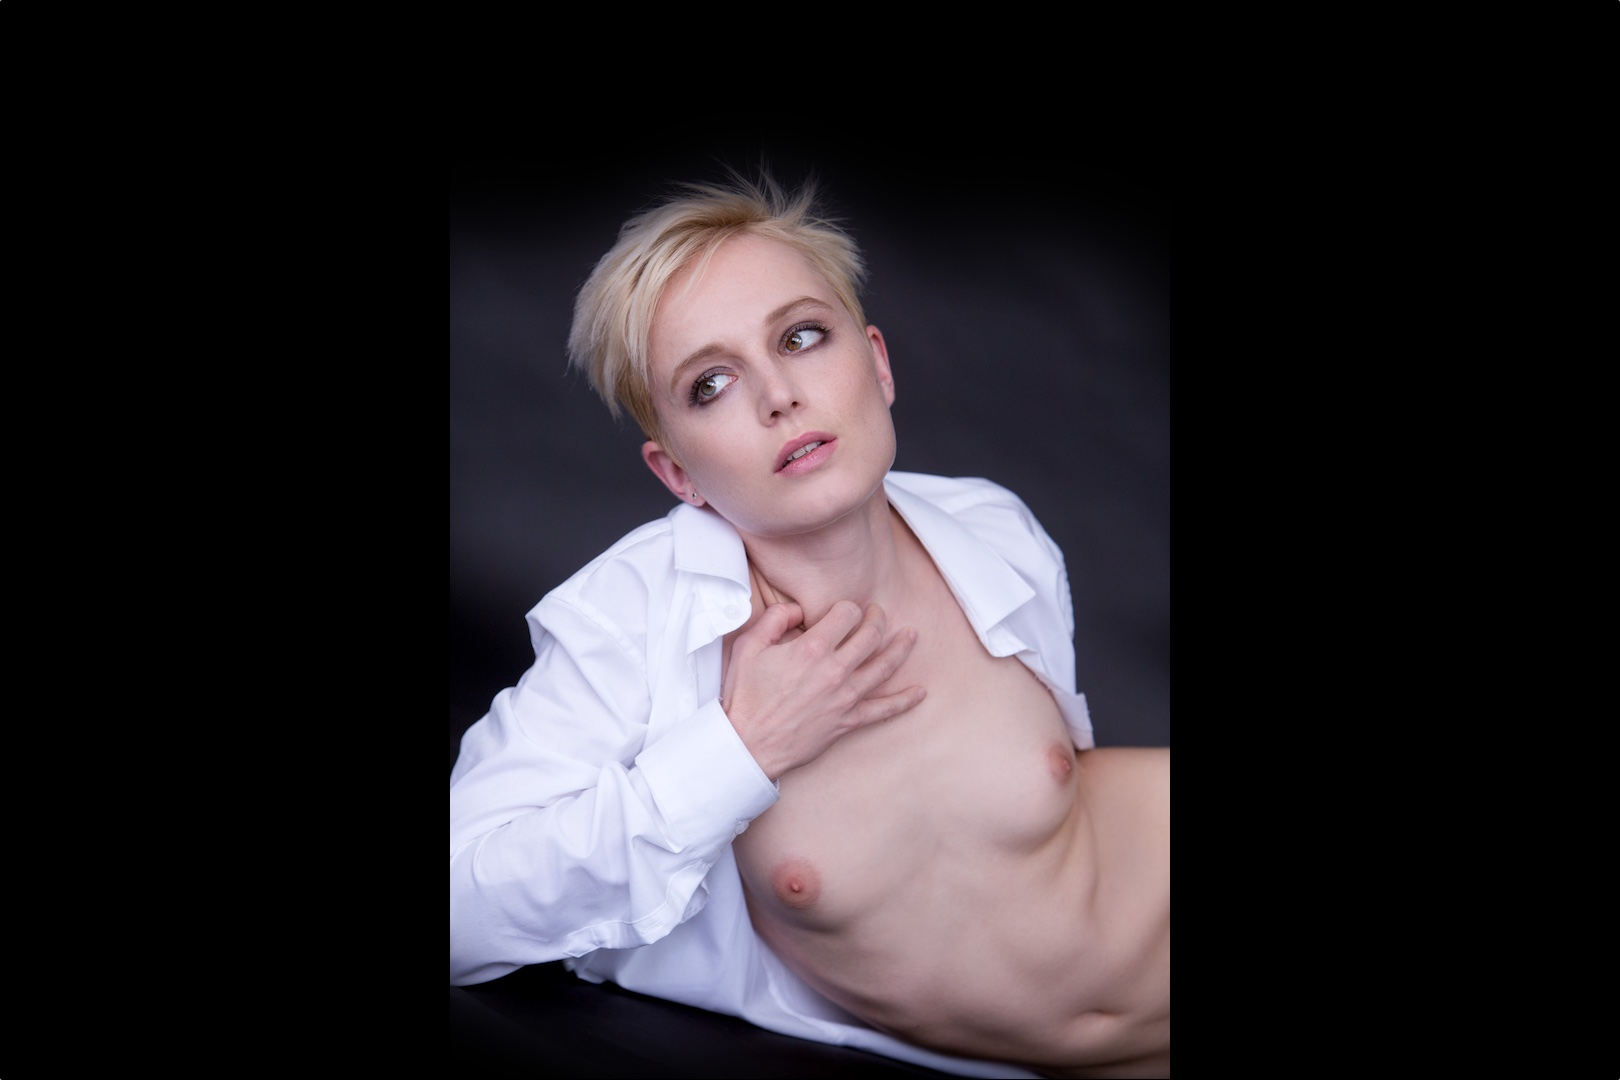 Sonjuscha Escort Berlin short hair blonde